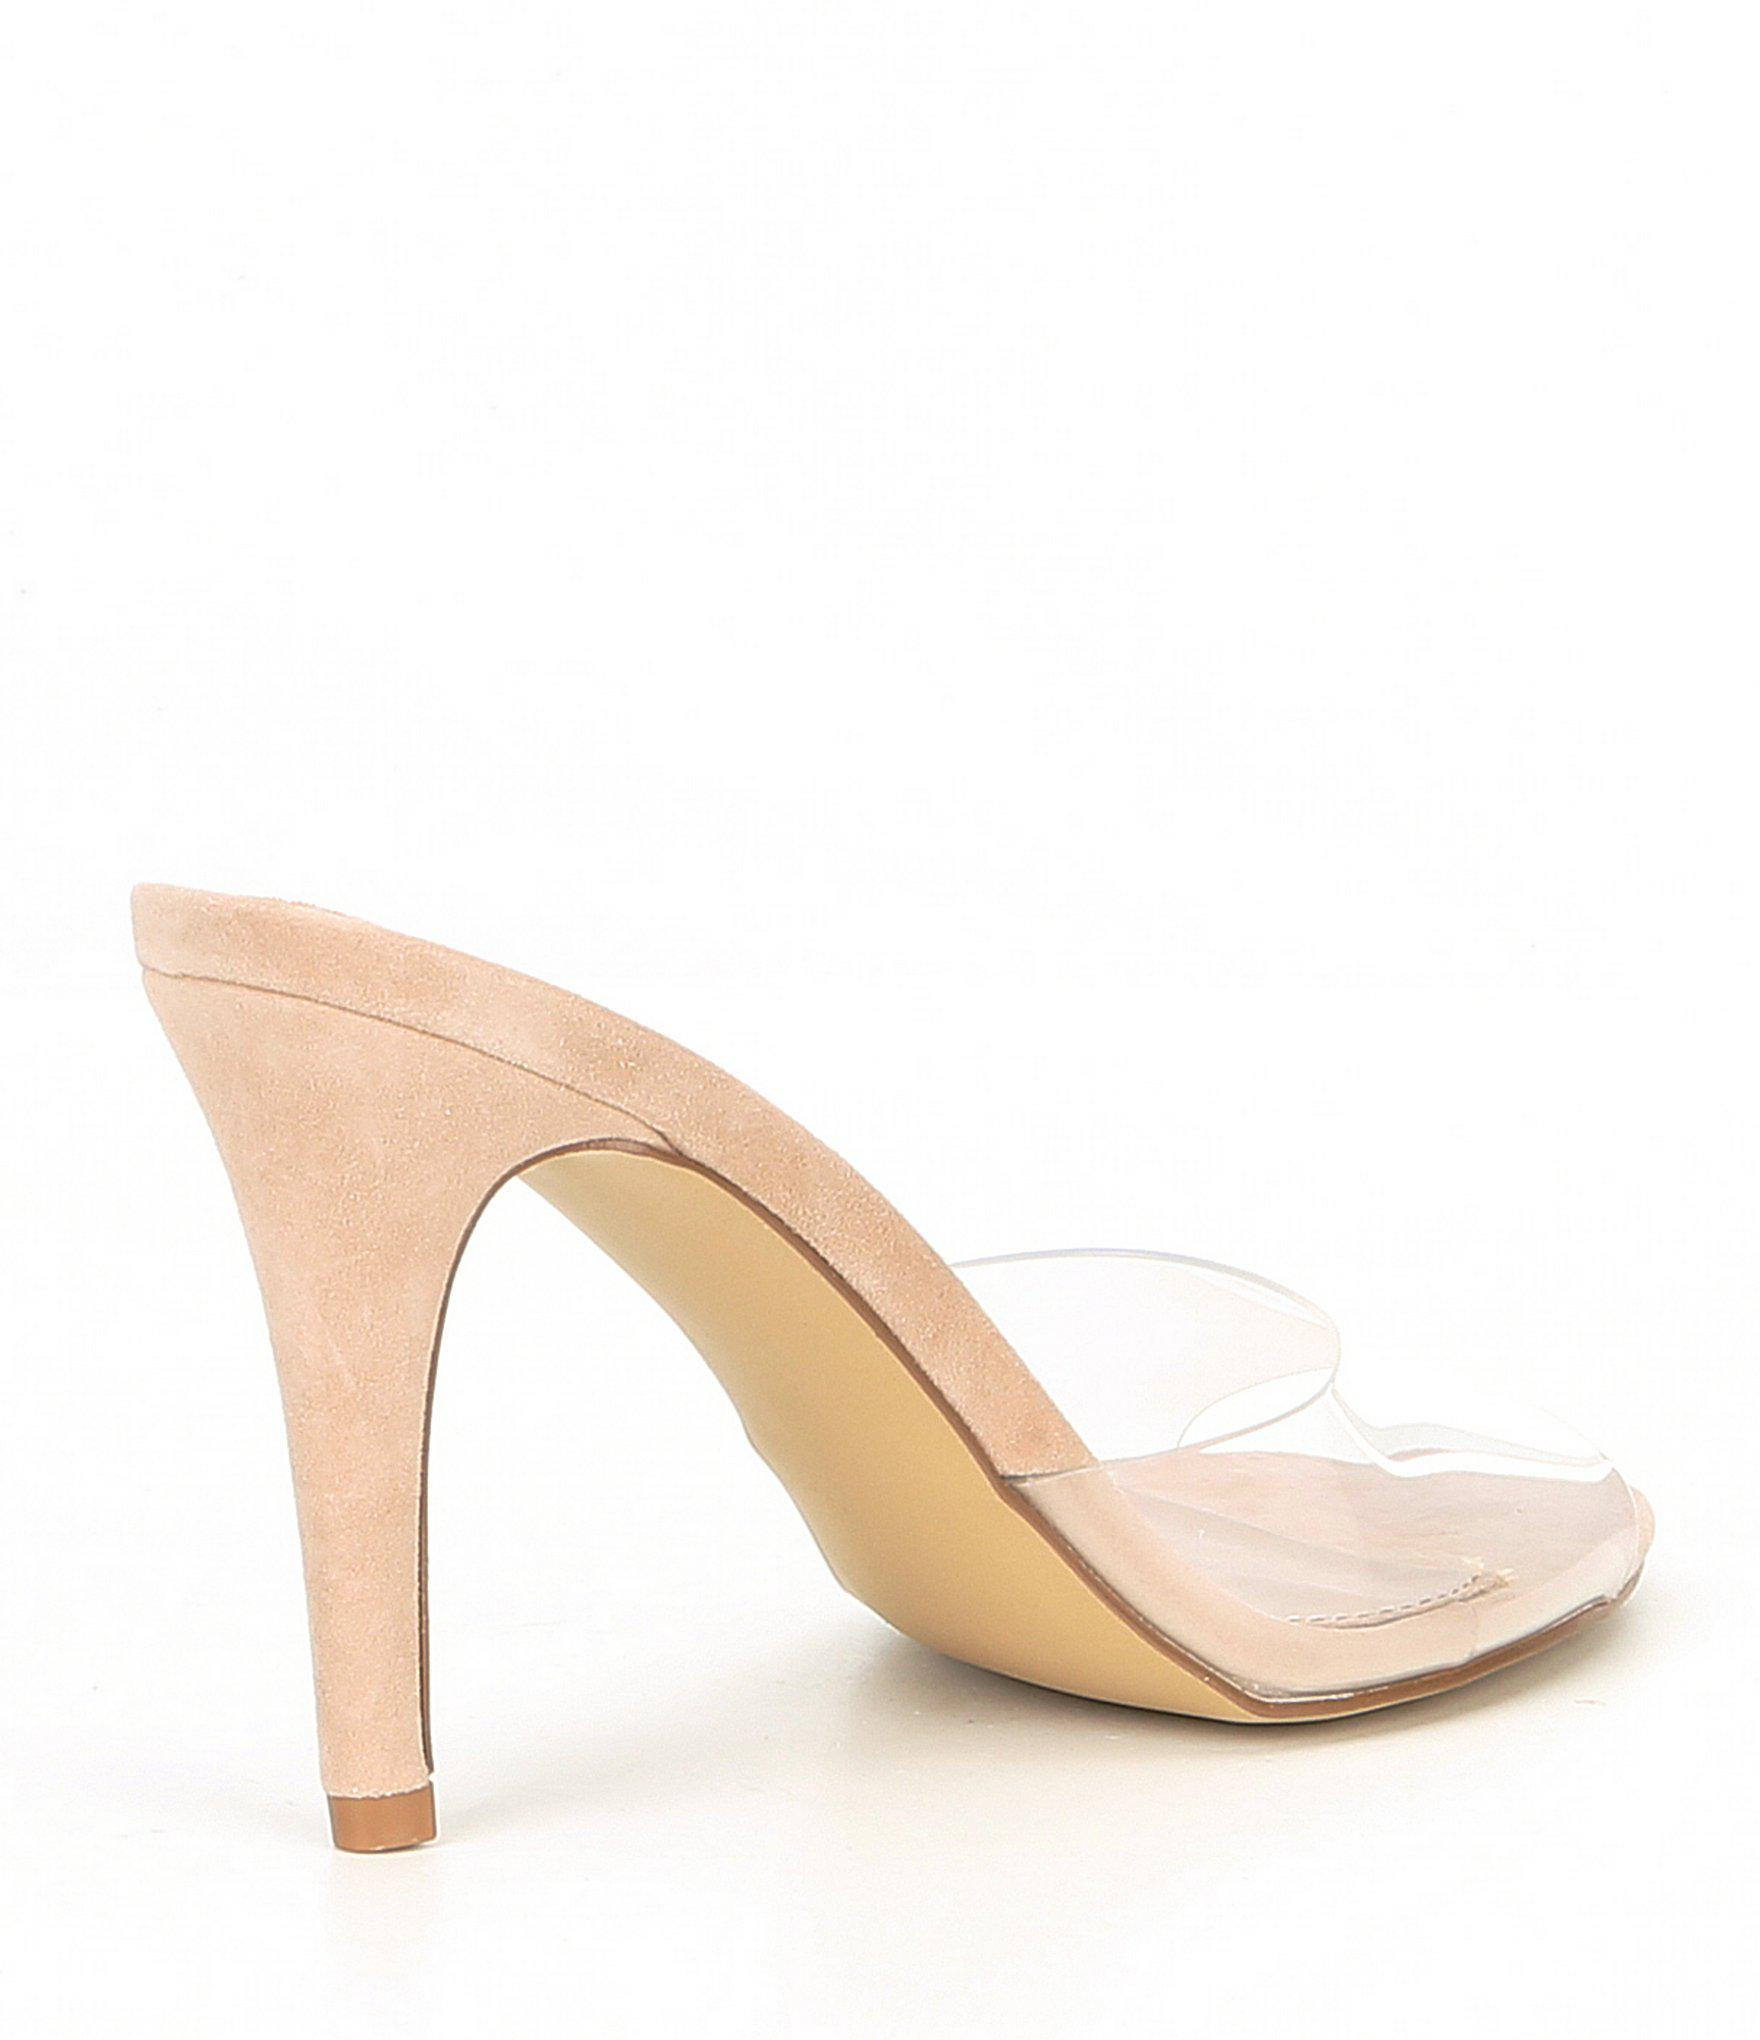 719366bd7bc Steve Madden - Multicolor Erin Clear Stiletto Sandals - Lyst. View  fullscreen